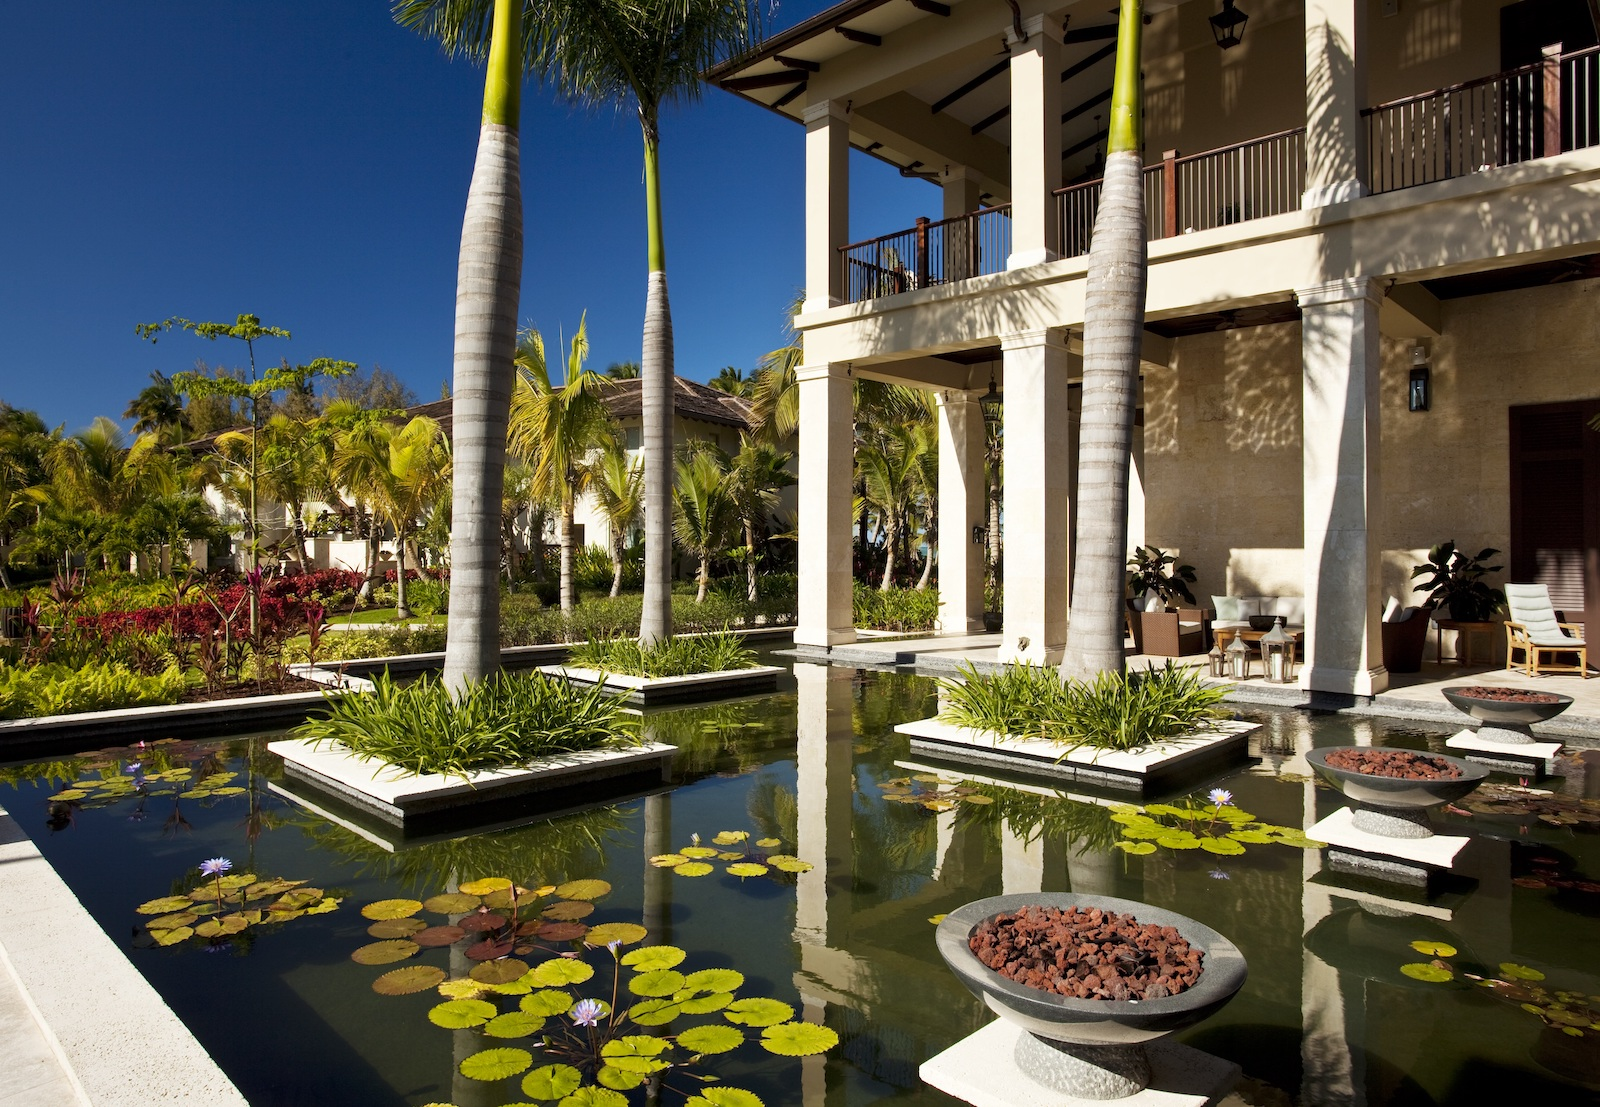 The breathtaking gardens of the St. Regis Bahia Beach Resort.